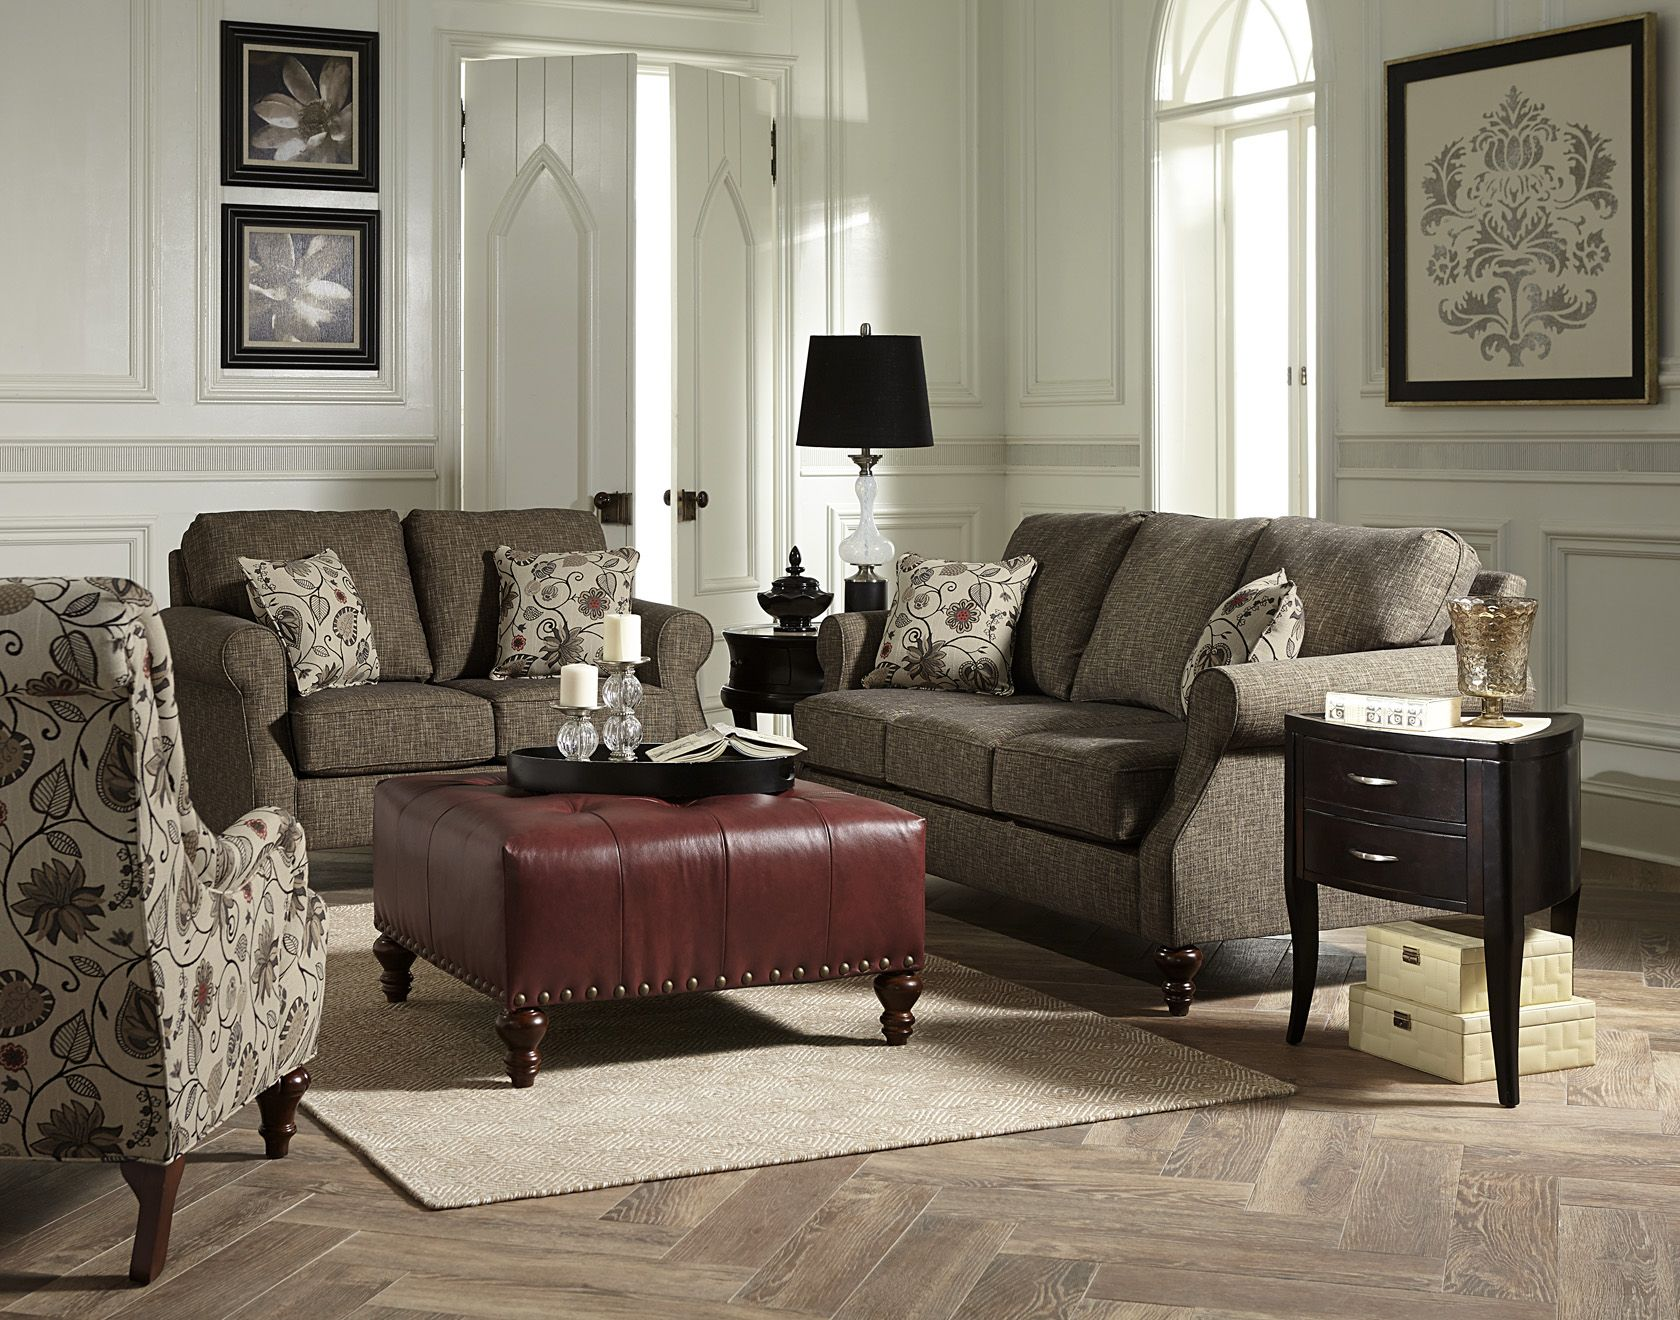 England Furniture 1Z00 with Ophelia Tweed and Tulsa Classic